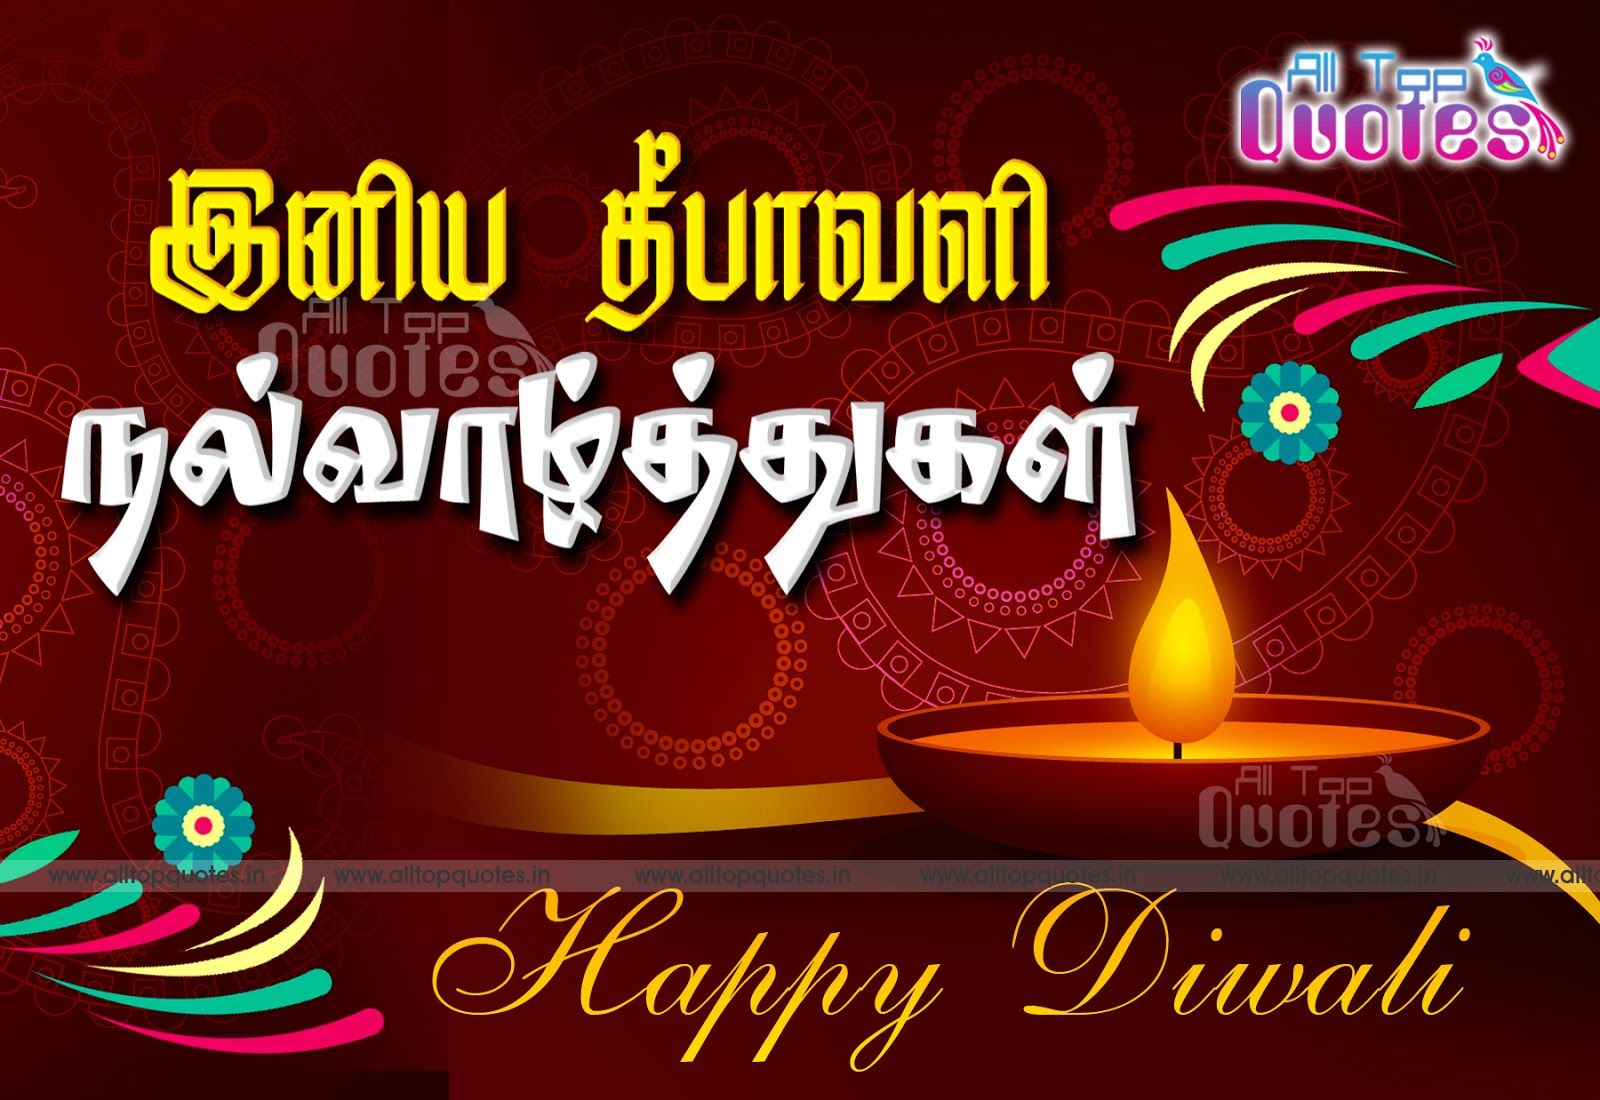 Happy diwali tamil quotes wishes and greetings hd wallpapers happy diwali tamil quotes wishes and greetings hd kristyandbryce Gallery